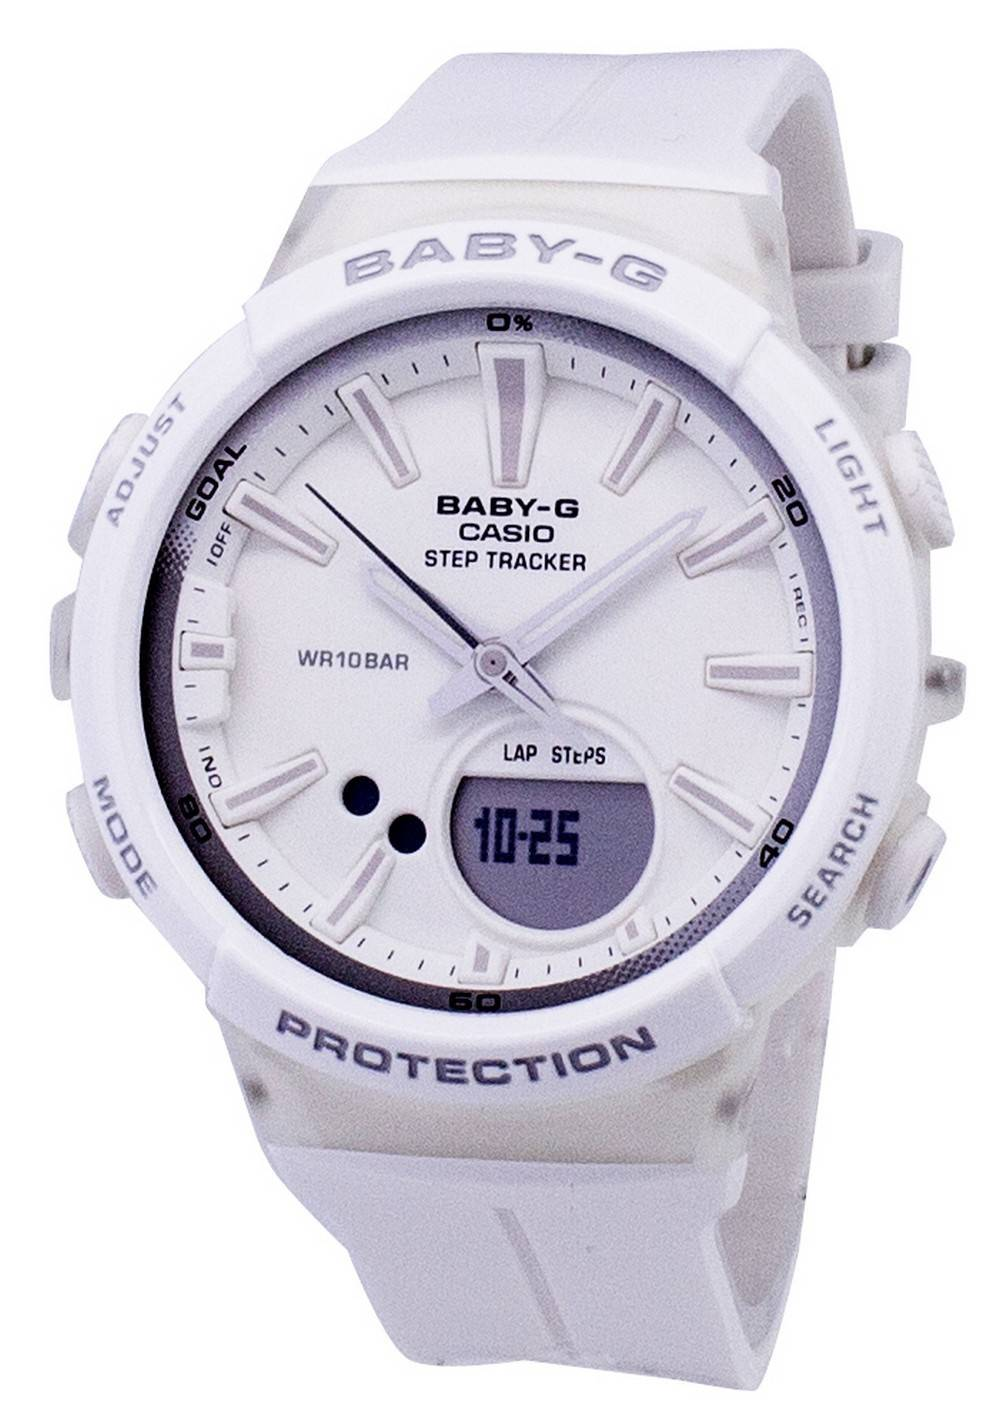 dee7f5dabec Details about Casio Baby-G Step Tracker Analog Digital BGS-100-7A1  BGS100-7A1 Womens Watch